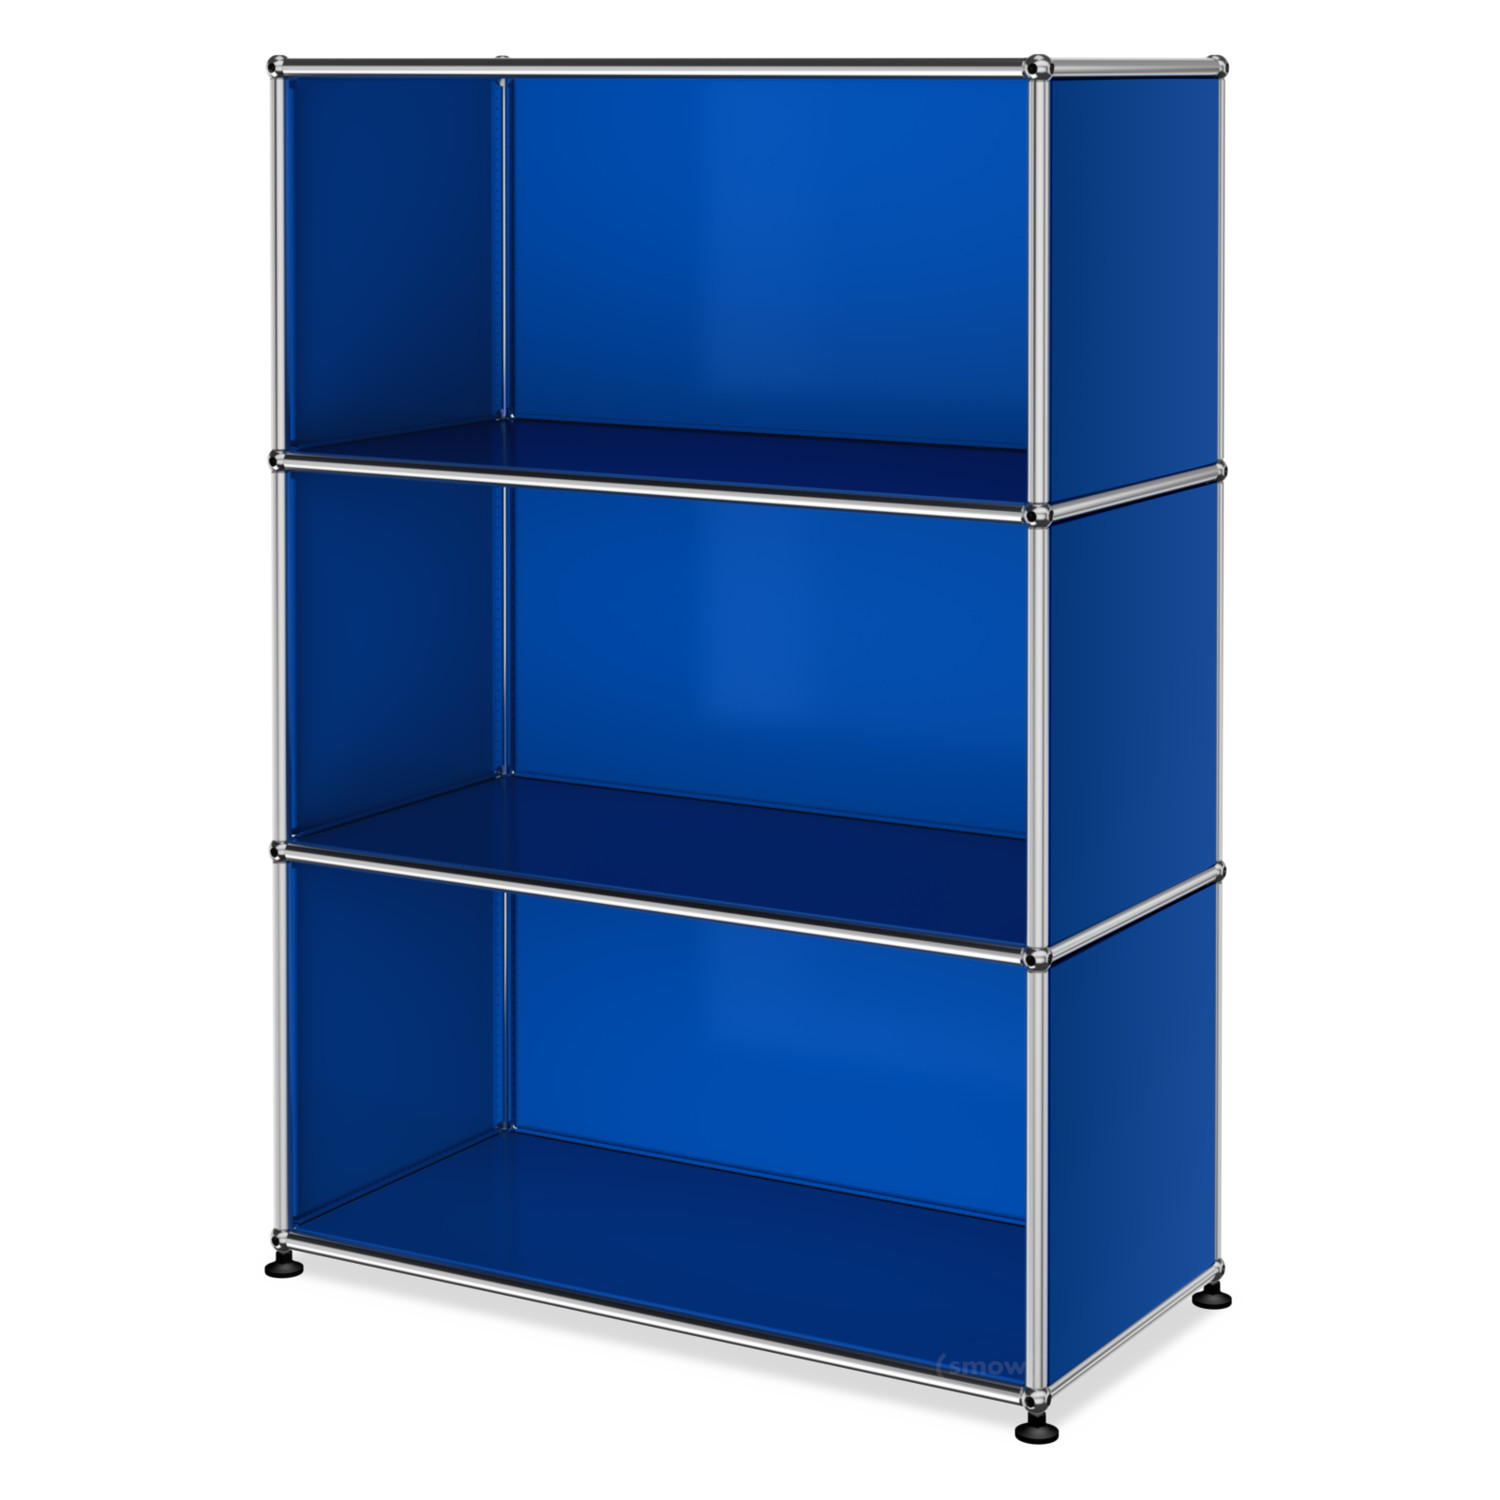 usm haller highboard m offen enzianblau ral 5010 von fritz haller paul sch rer. Black Bedroom Furniture Sets. Home Design Ideas